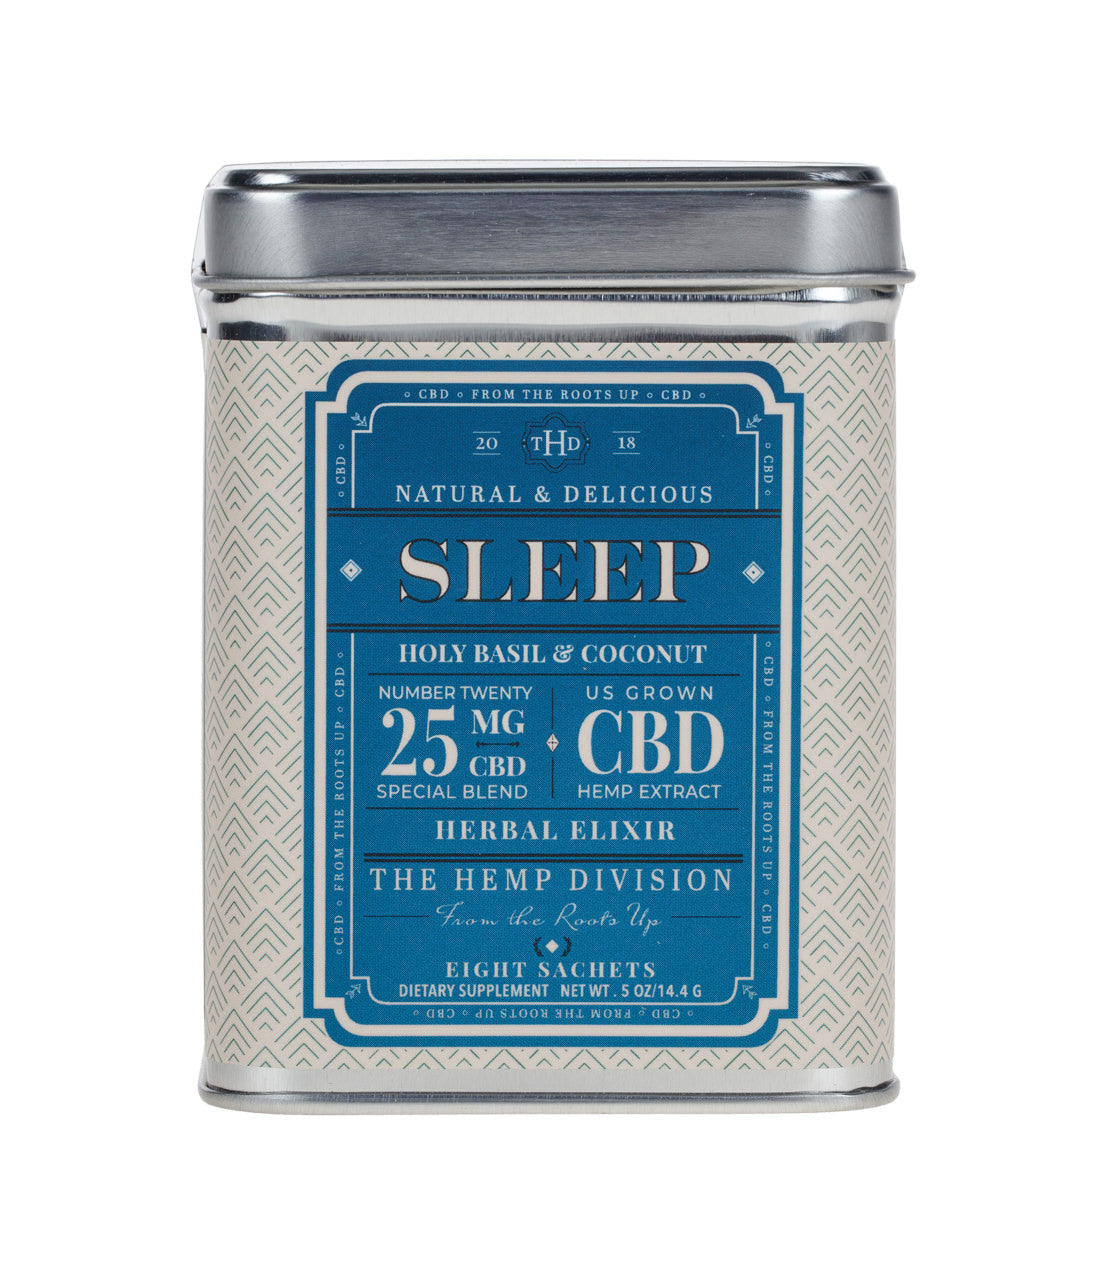 Sleep 8 Ct Sachets Holy Basil Coconut 25 Mg Hemp Harney